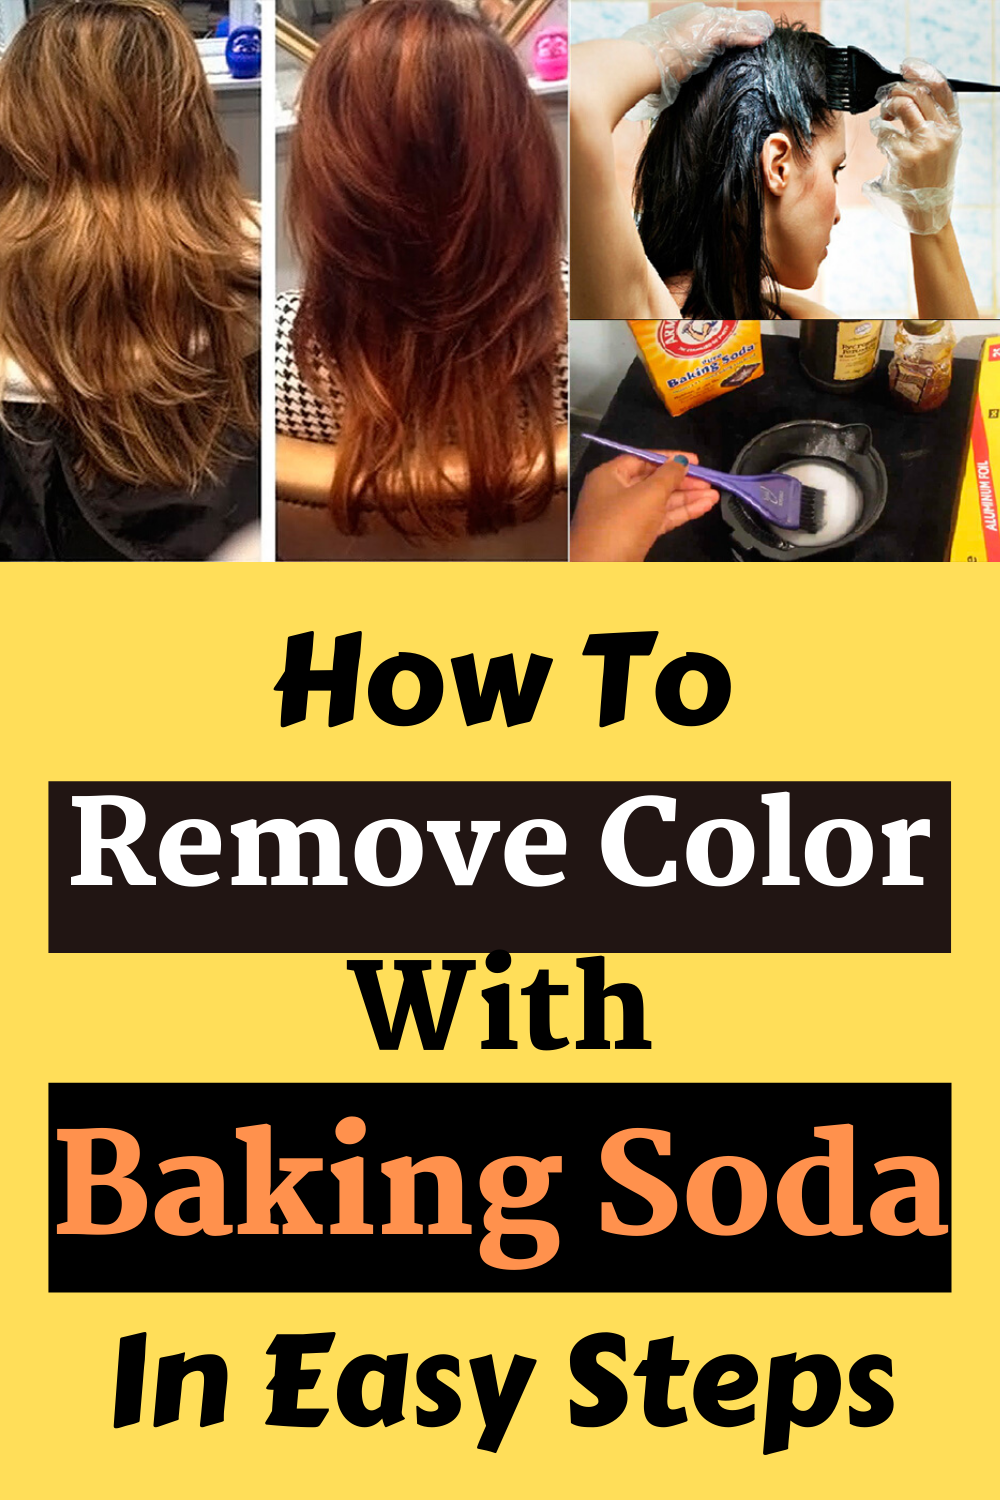 Baking Soda The Best Natural Way To Remove Color There Are Many Natural Remedies That Will Strip Awa In 2020 Hair Dye Removal Homemade Hair Color Hair Color Remover